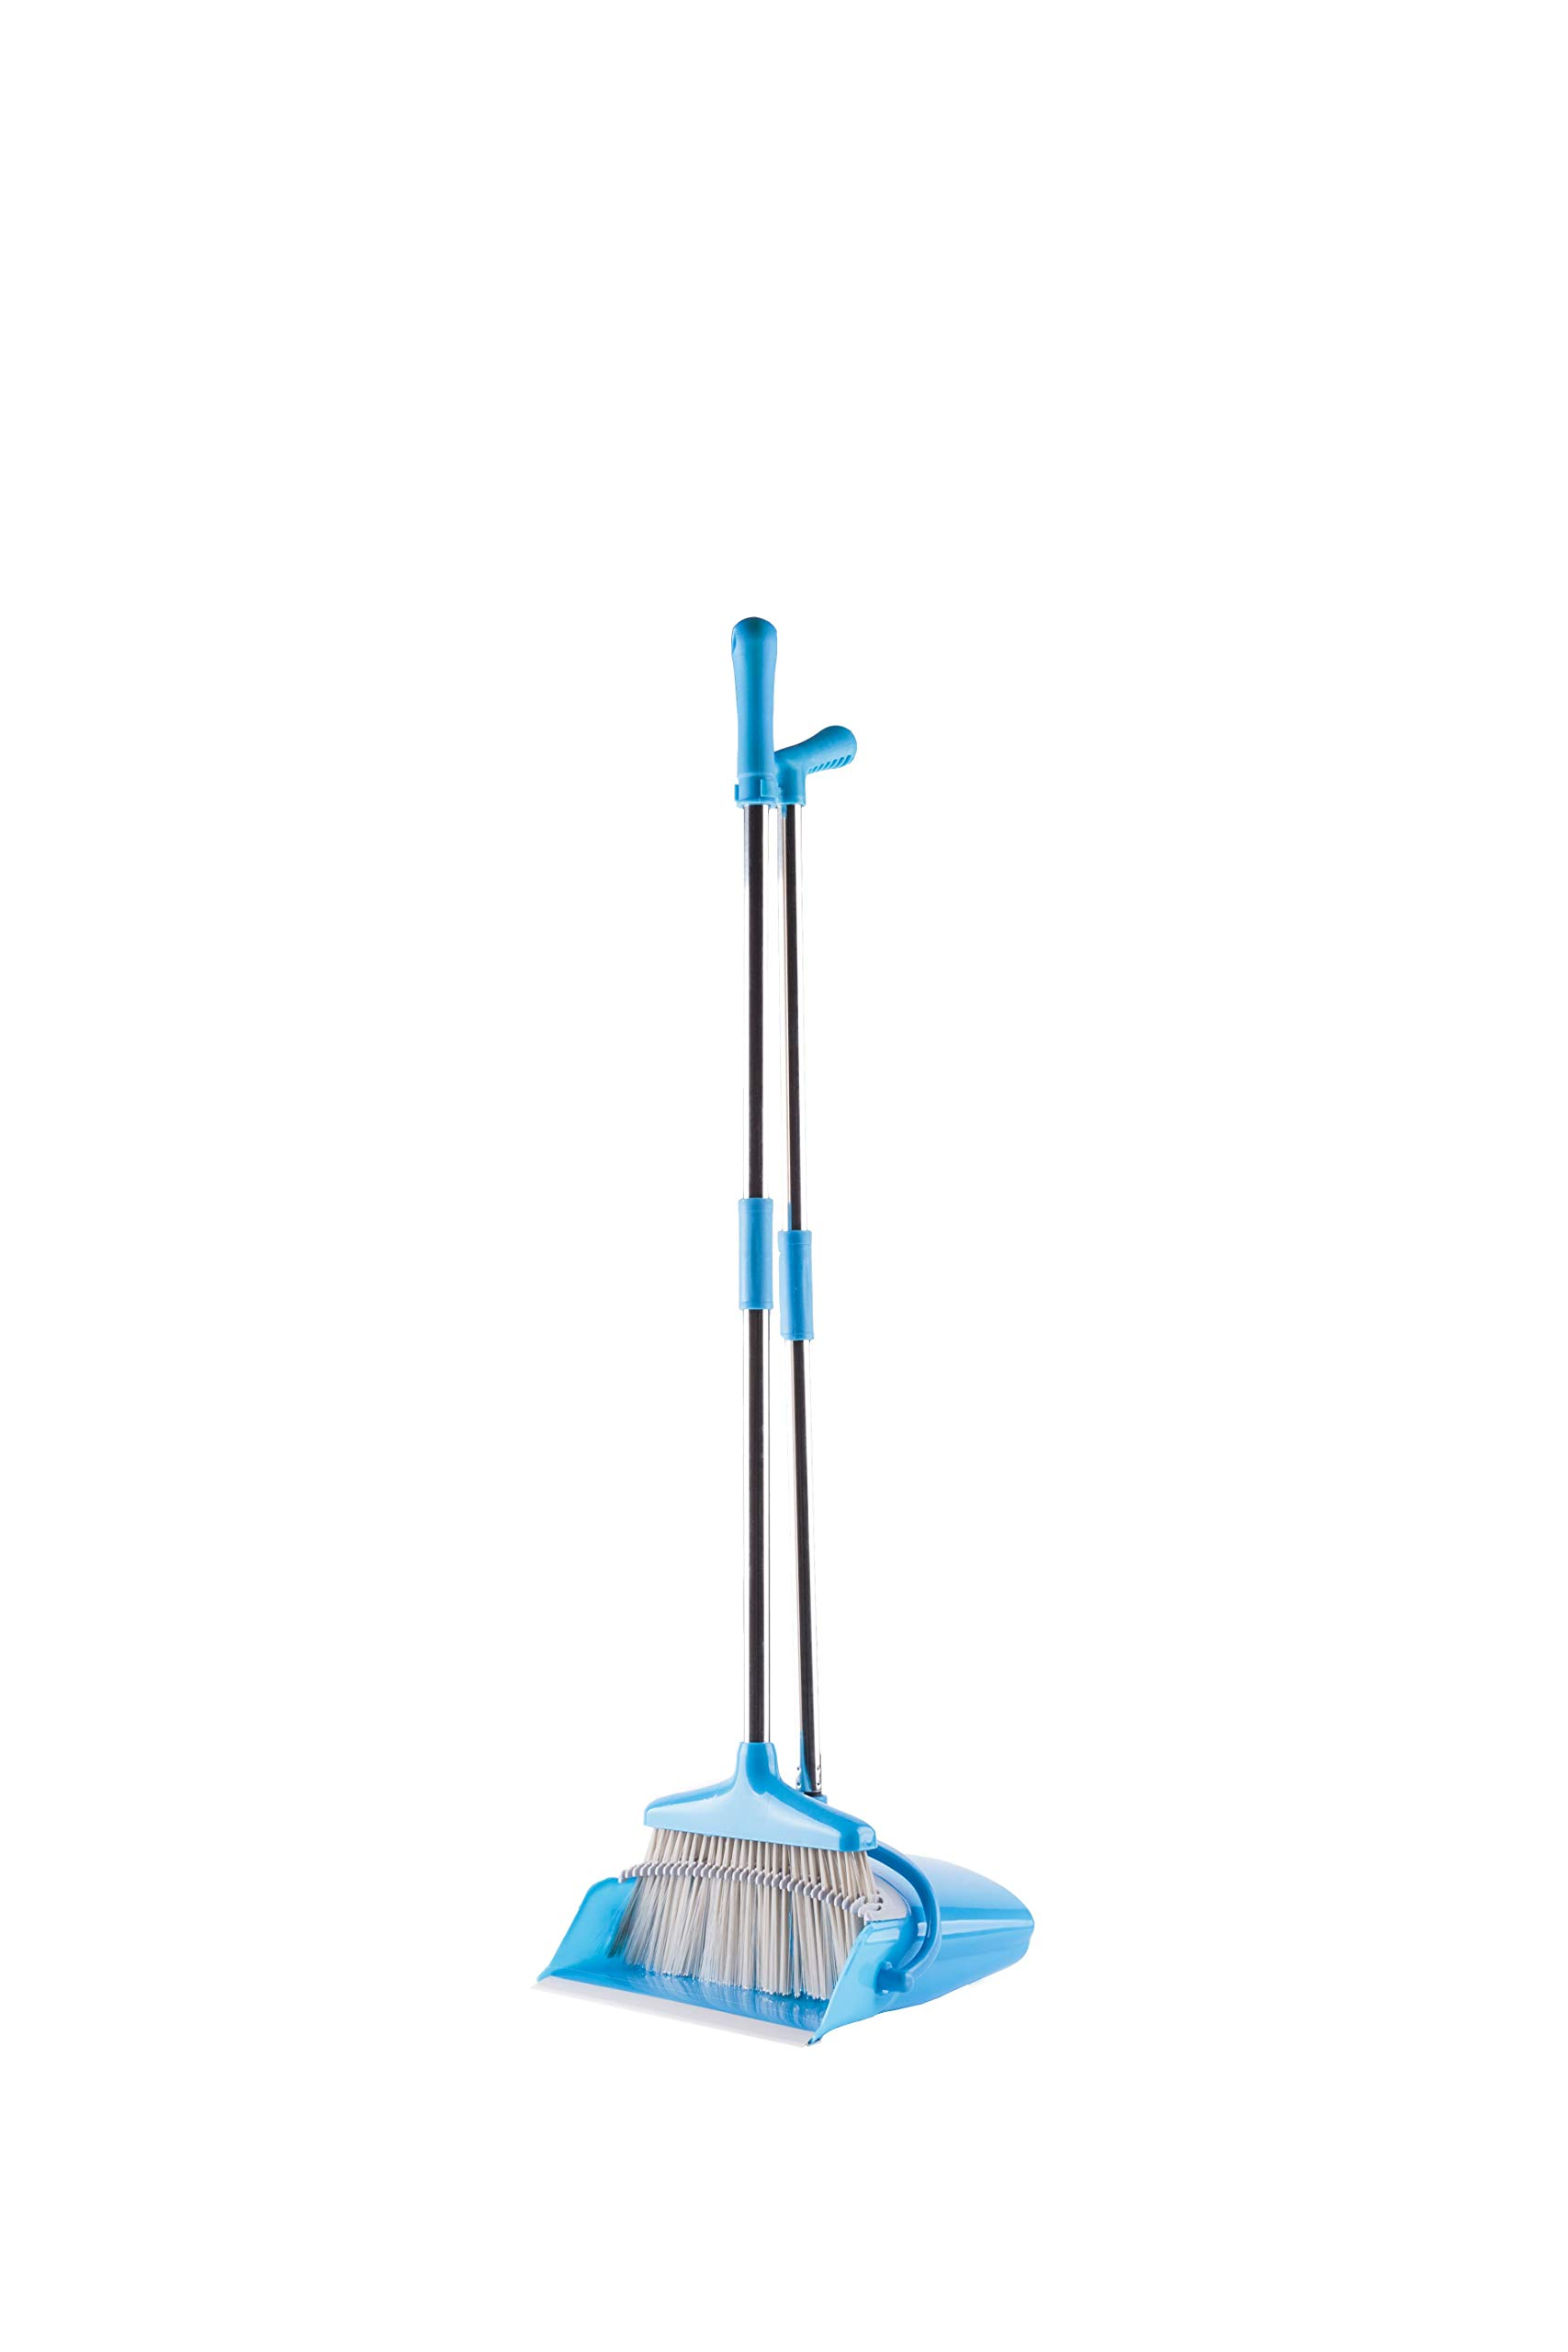 Broom and Dustpan with Handle Set - Long Handled, Collapsible and Extendable to 53'' - Plus Bonus Rotatable 180 Degree Broom Head - Best Broom Combo Set